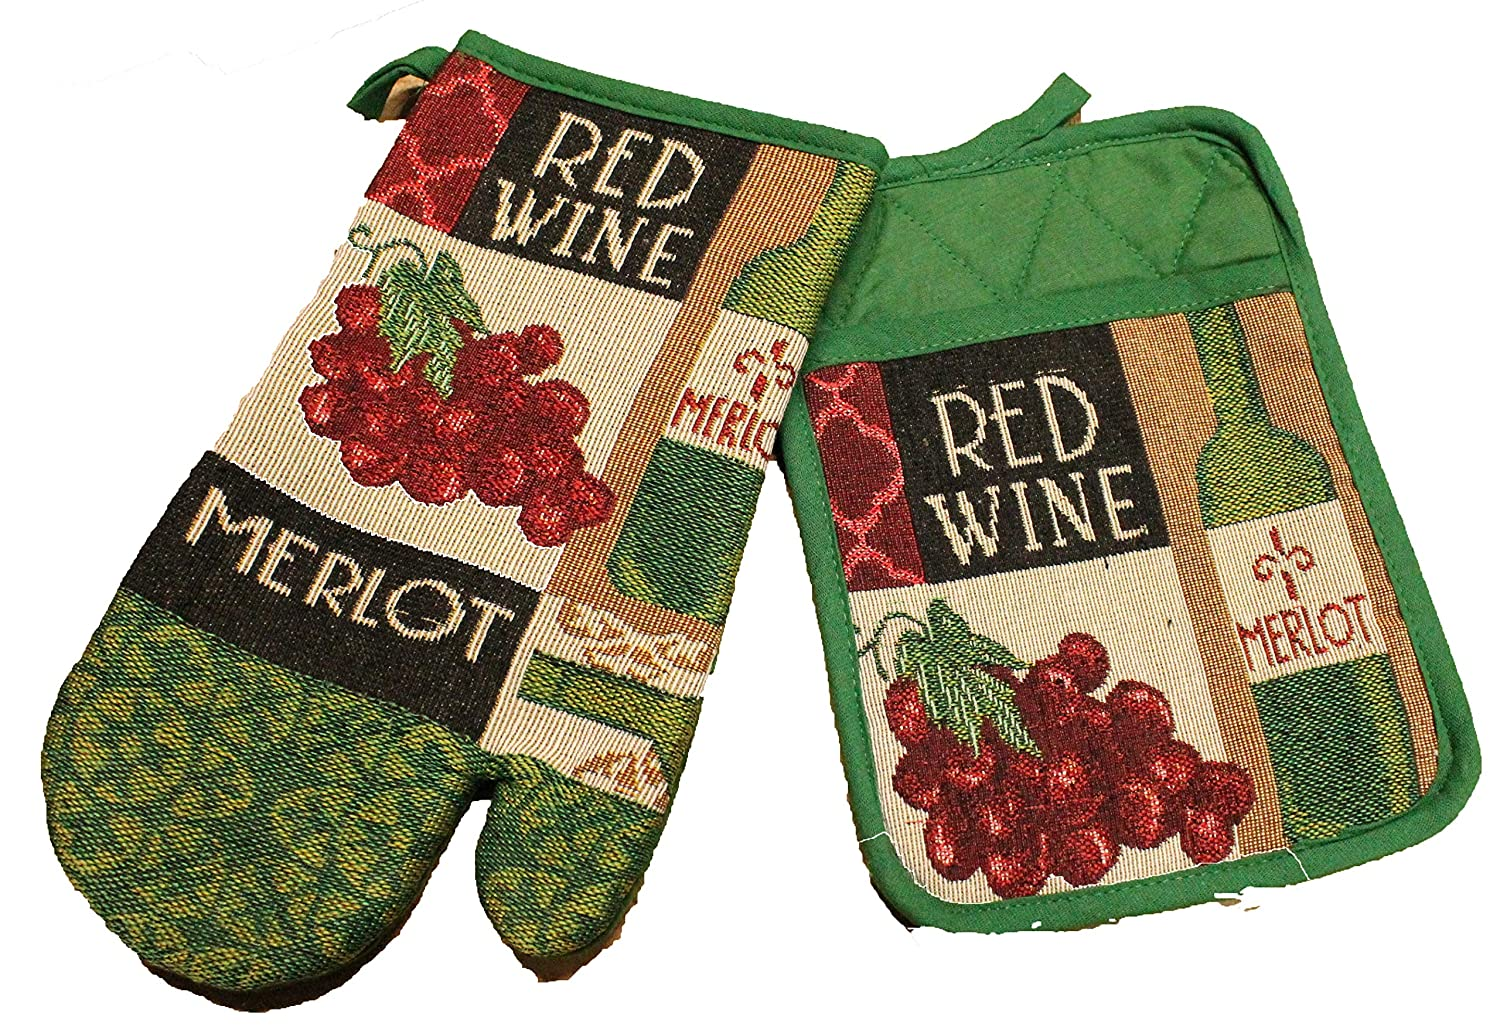 Twisted Anchor Trading Co 2 Pc Wine Pot Holder Set with Wine Oven Mitt - Great Wine Kitchen Gift Set - Comes in an Organza Gift Bag so It's Ready for Giving